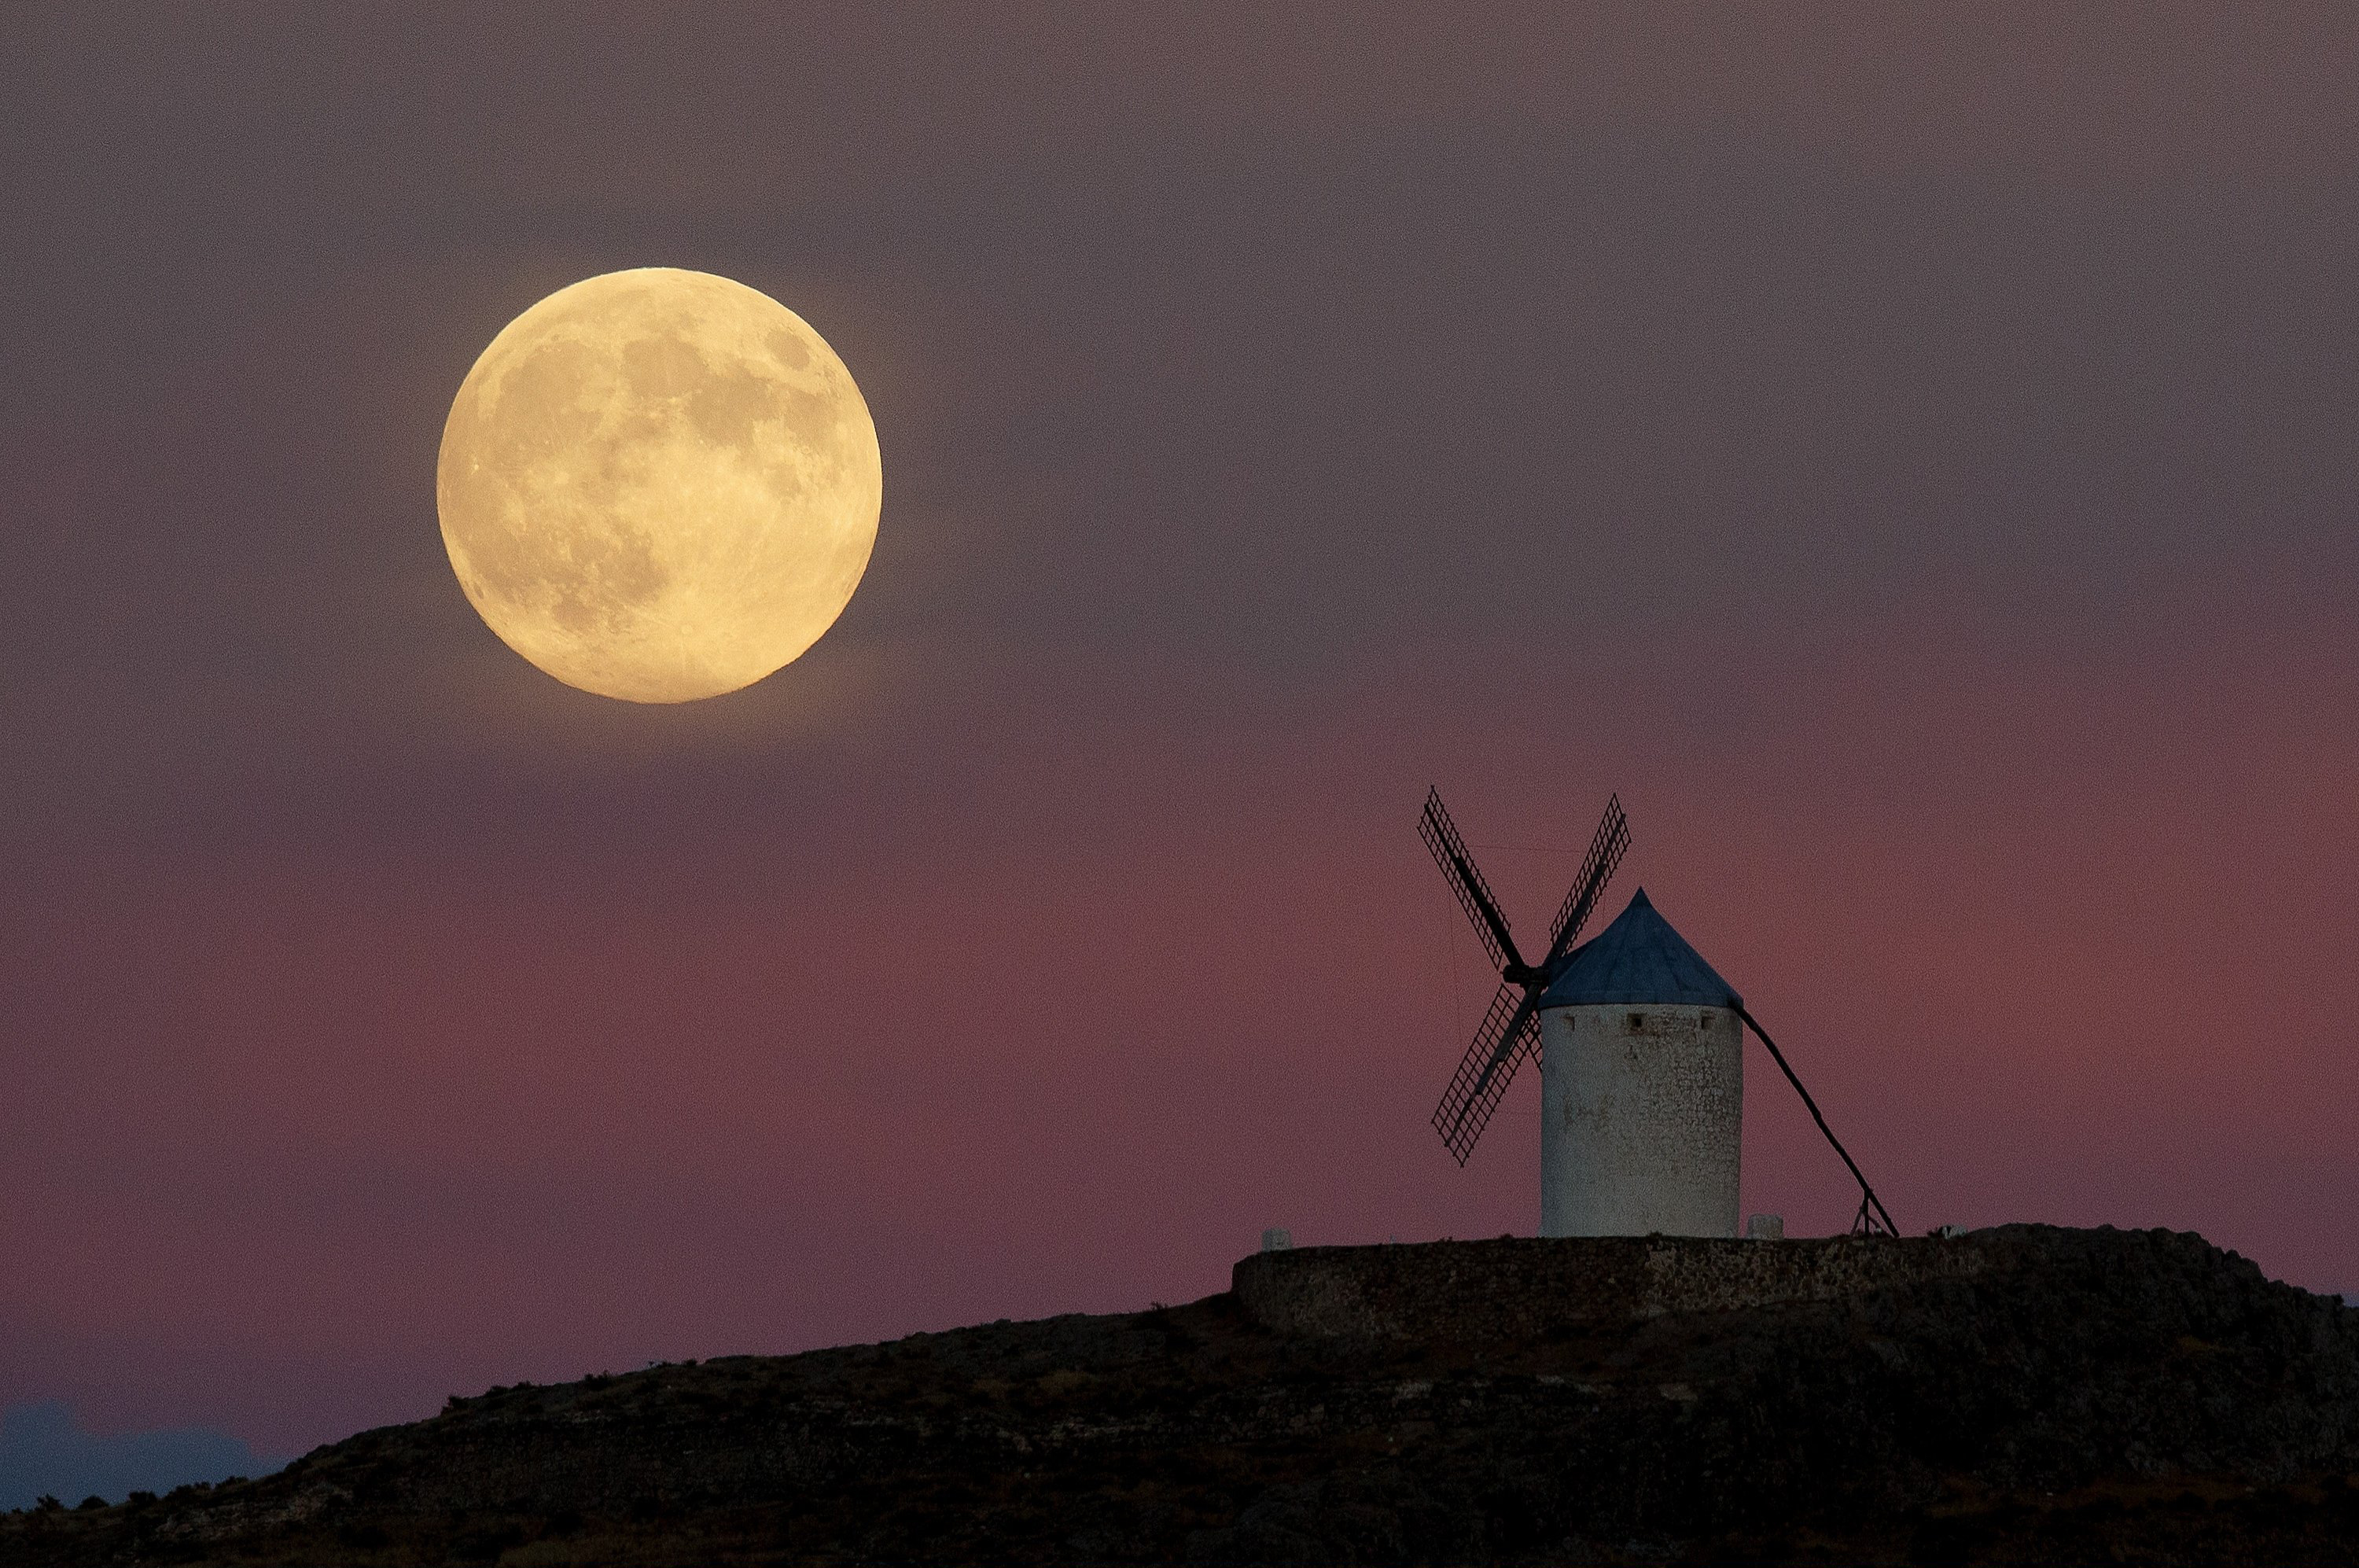 A moon appears behind a windmill a day before the supermoon is full on Sept. 8, 2014 in Consuegra, Toledo province, Spain.